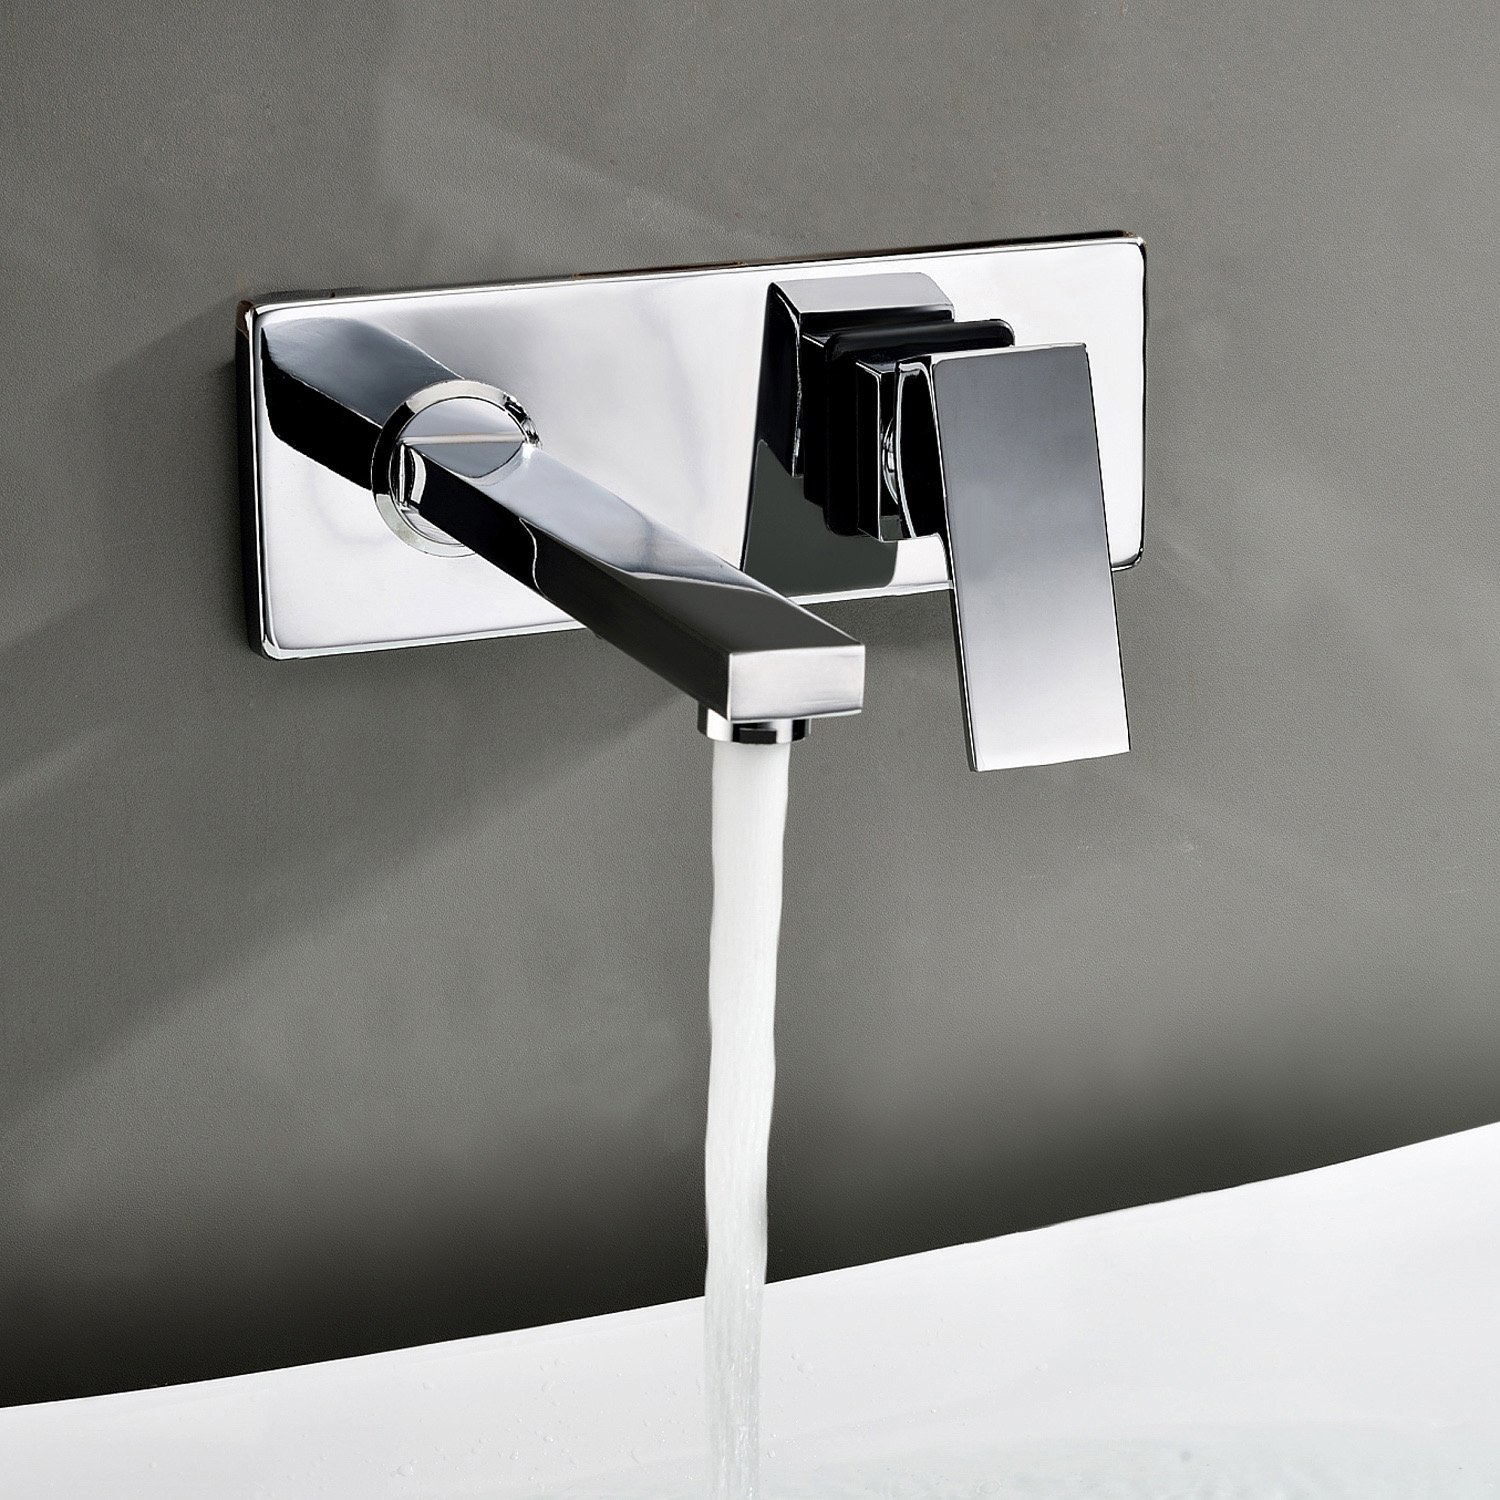 Lightinthebox Contemporary Wall Mount Bathroom Sink Faucet Chrome Finish Long Curve Spout Single Handle Hole Cover Bathtub Mixer Taps Lavatory Bath Shower Roman Tub Faucets Long Spout Bar Faucets Plumbing Fixtures Solid Brass Valve Included by LightInTheBox